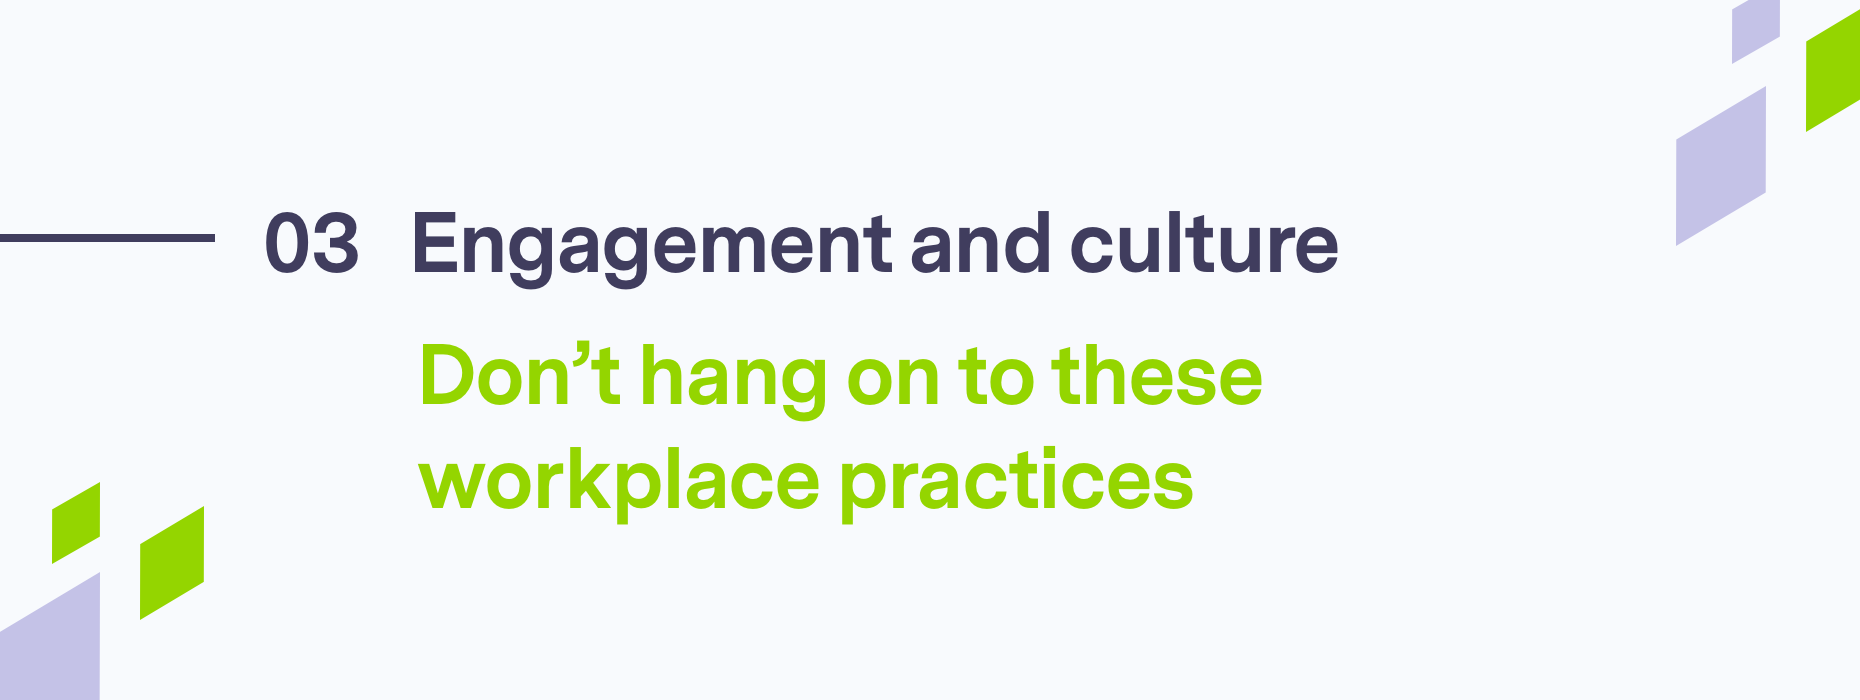 Don't hang on to these workplace practices